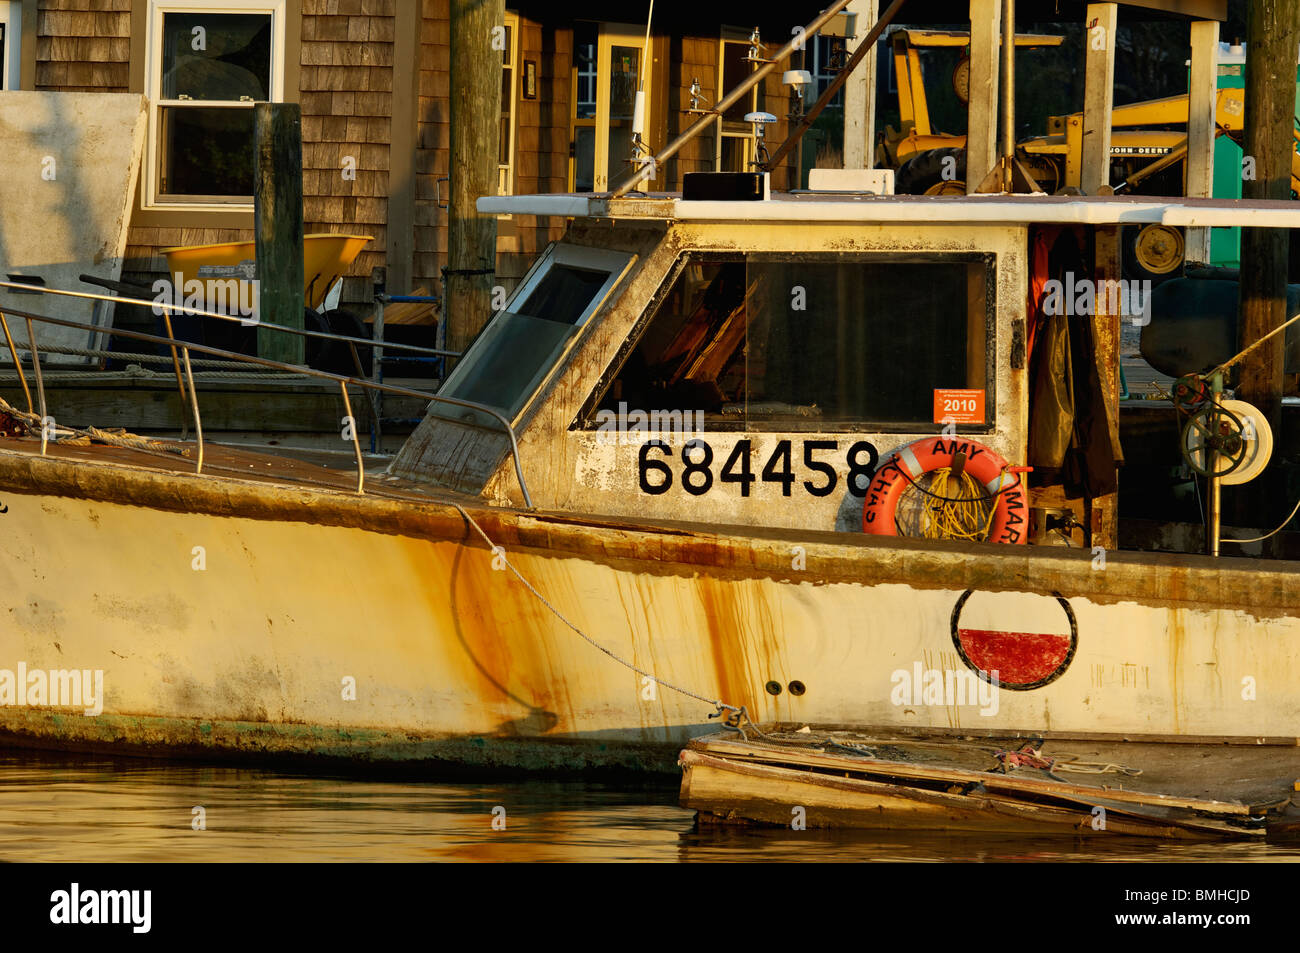 Evening Light on Old Fishing Boat on Shem Creek in Charleston County, South Carolina - Stock Image